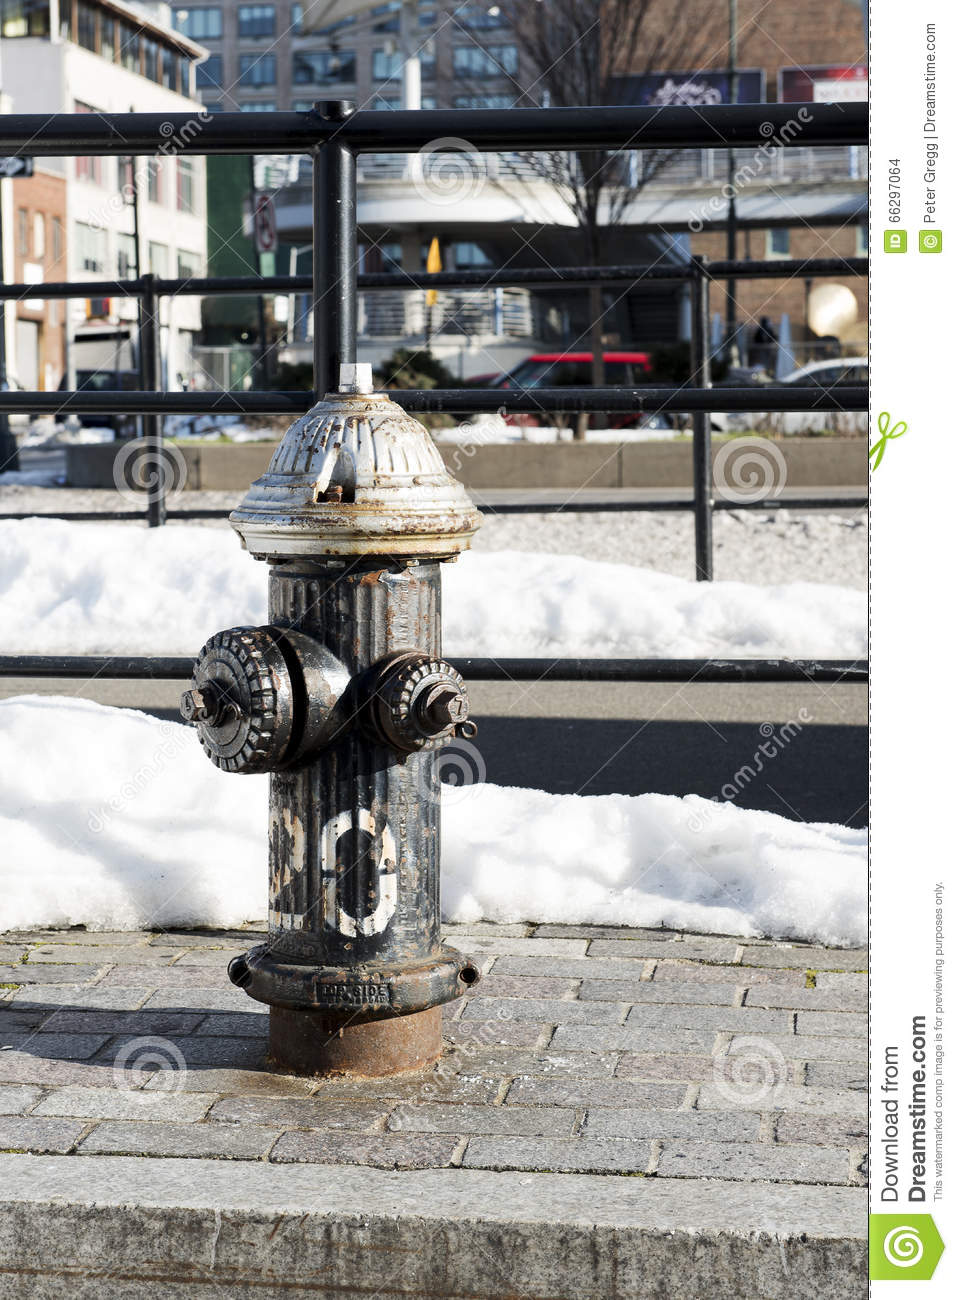 Black Fire hydrant (portrait)